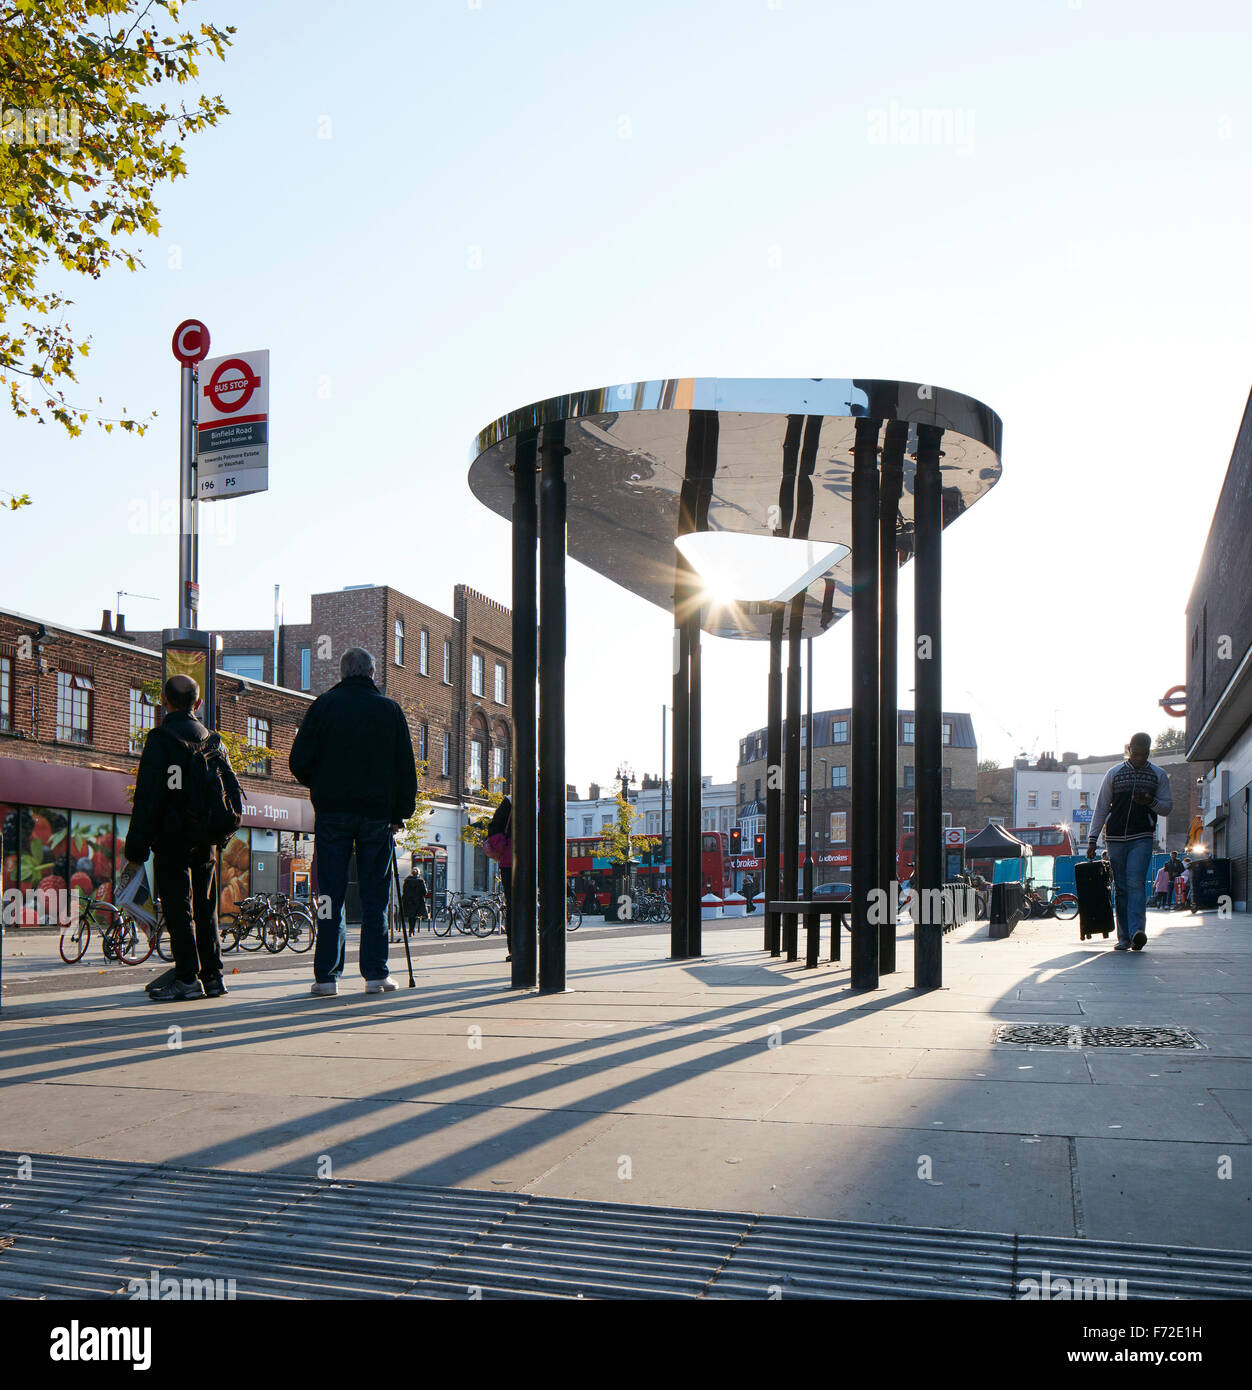 Backlit bus shelter in context. Binfield Road Bus Shelter, Stockwell Framework Masterplan, London, United Kingdom. - Stock Image